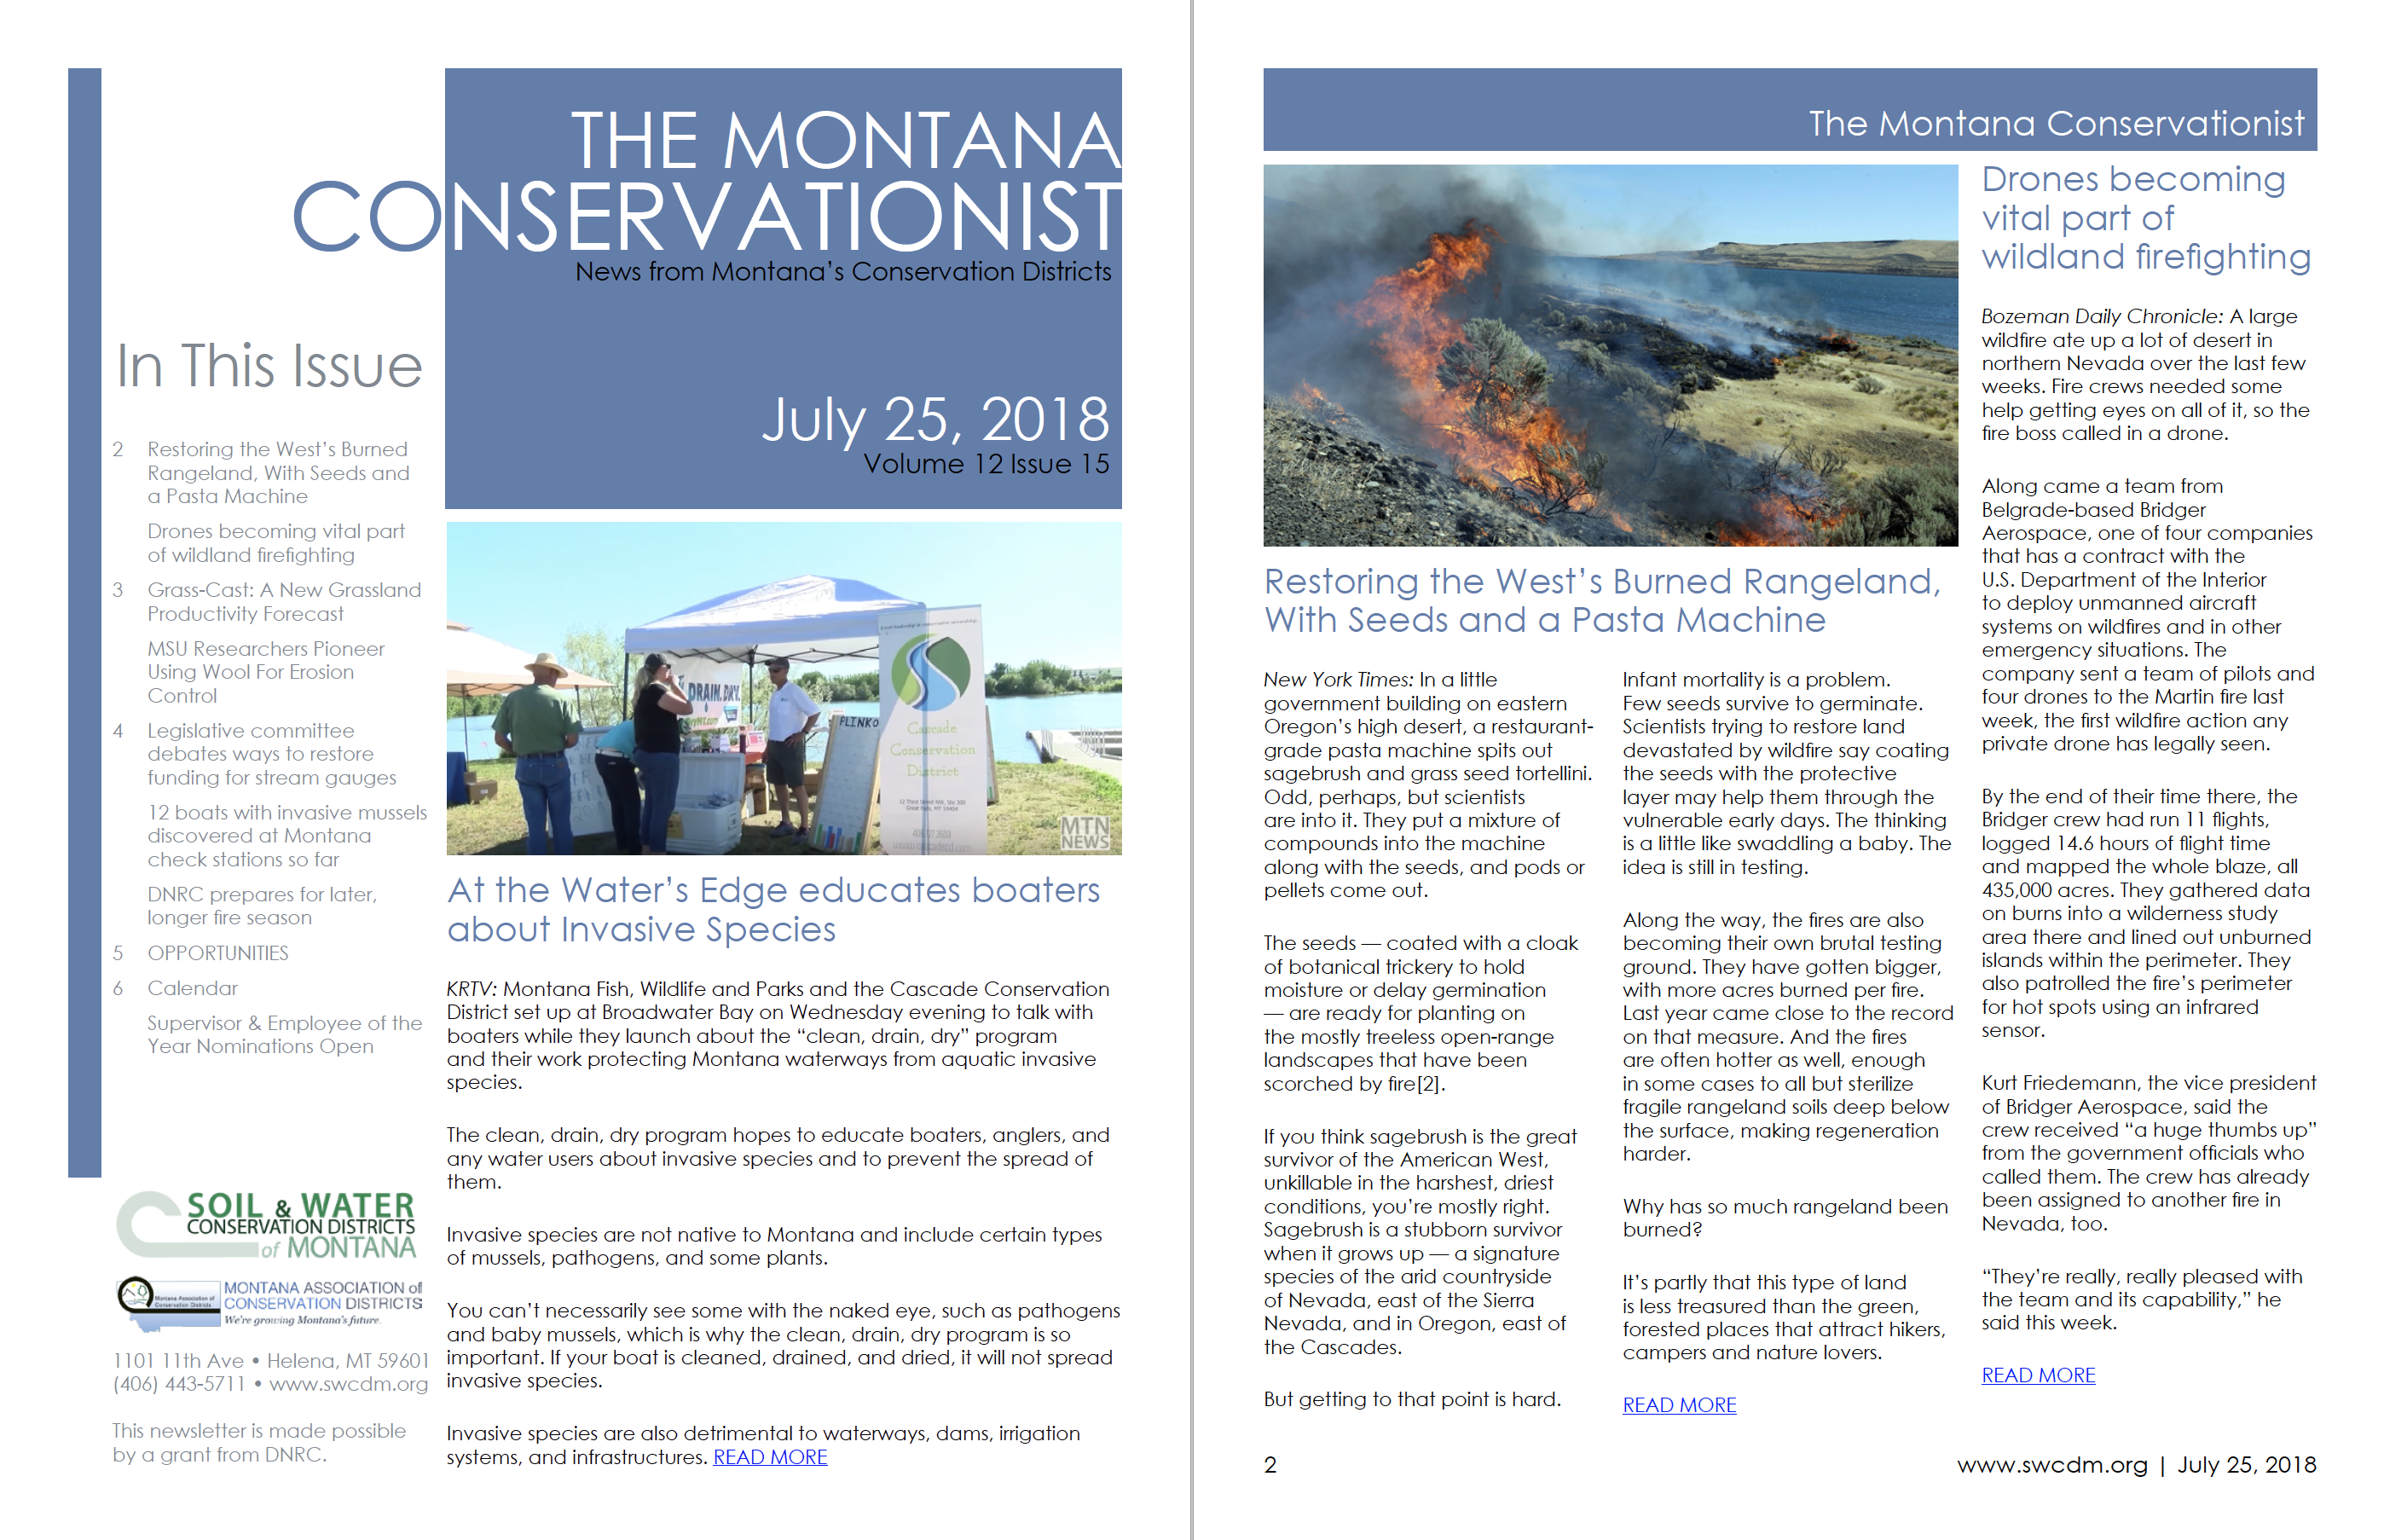 The Montana Conservationist July 25